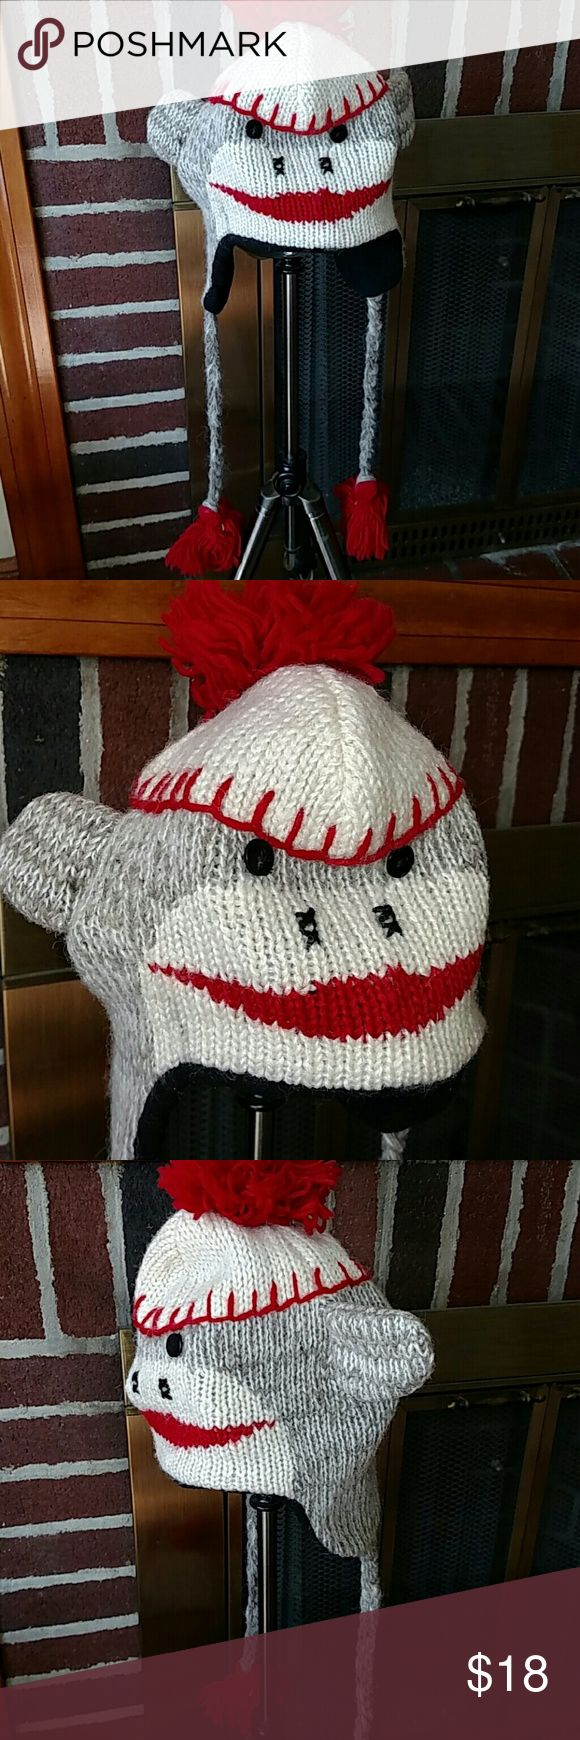 Sock monkey winter hat 🐒🐵 This hat is adorable!!! Accessories Hats